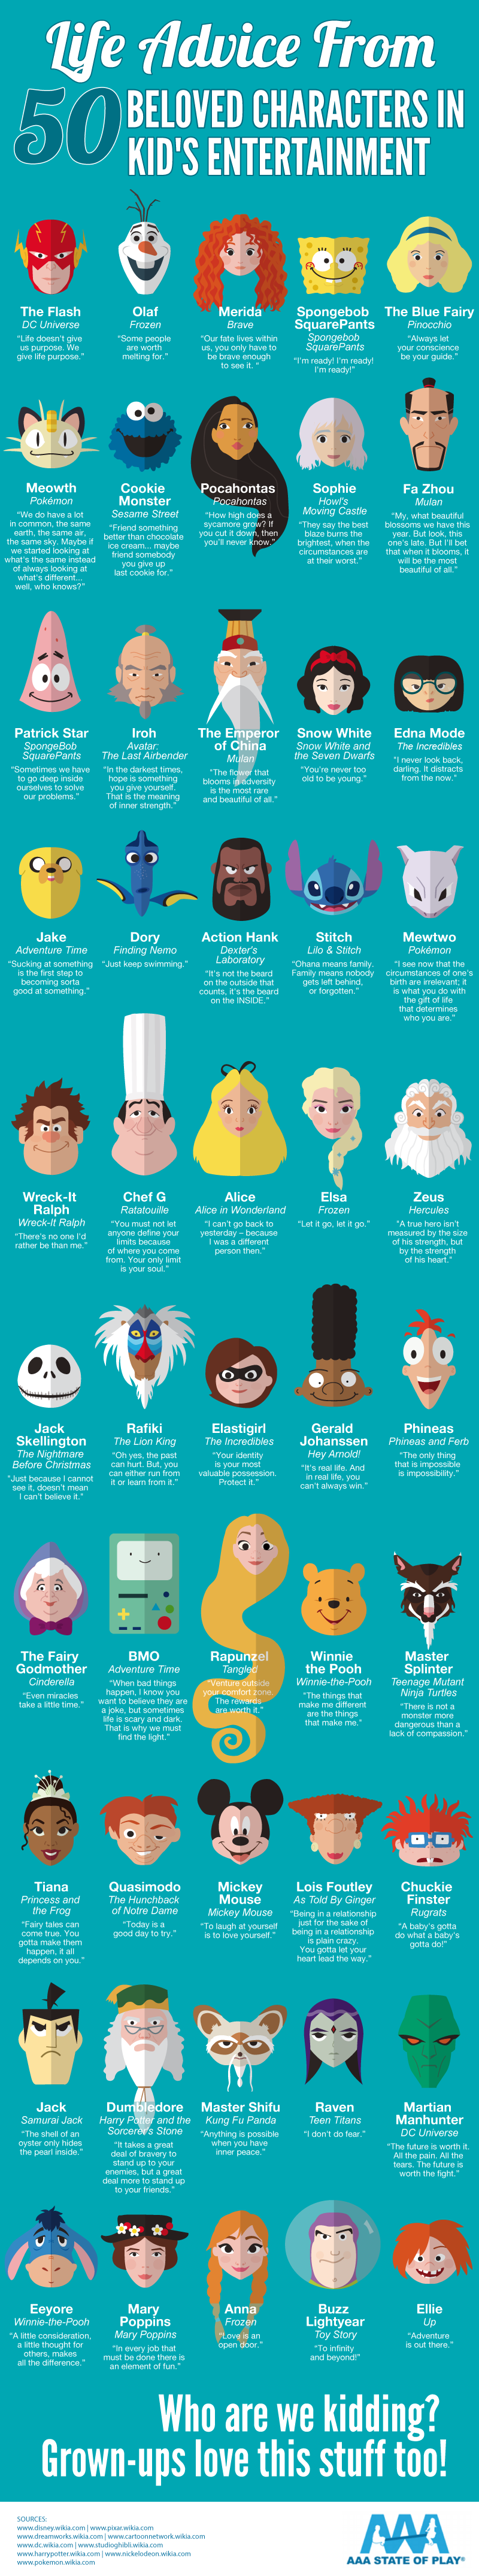 Life Advice from 50 Beloved Characters in Kid's Entertainment - AAAStateofPlay.com - Infographic